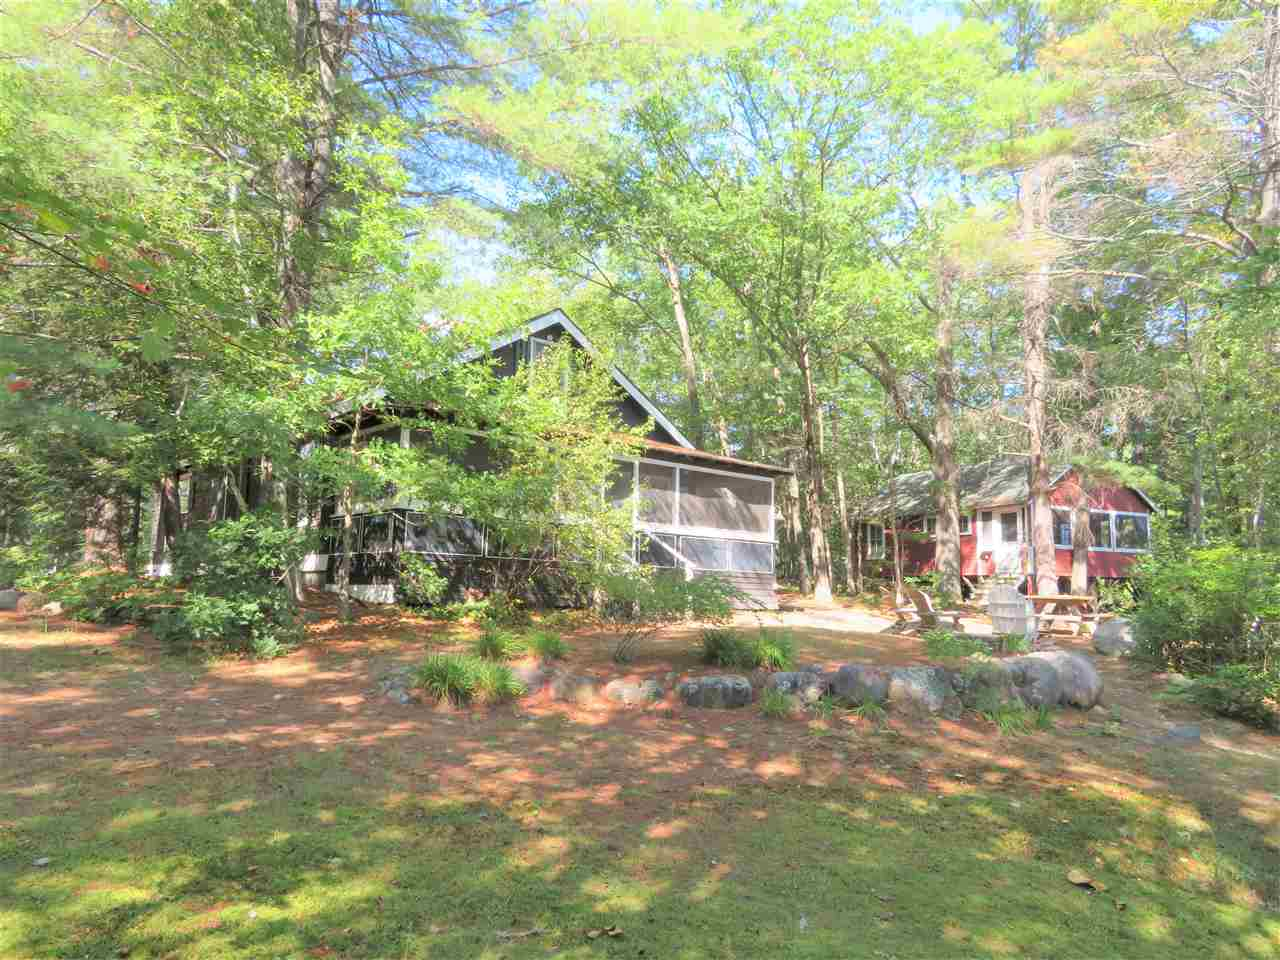 Lake Little Squam waterfront home for sale in Holderness